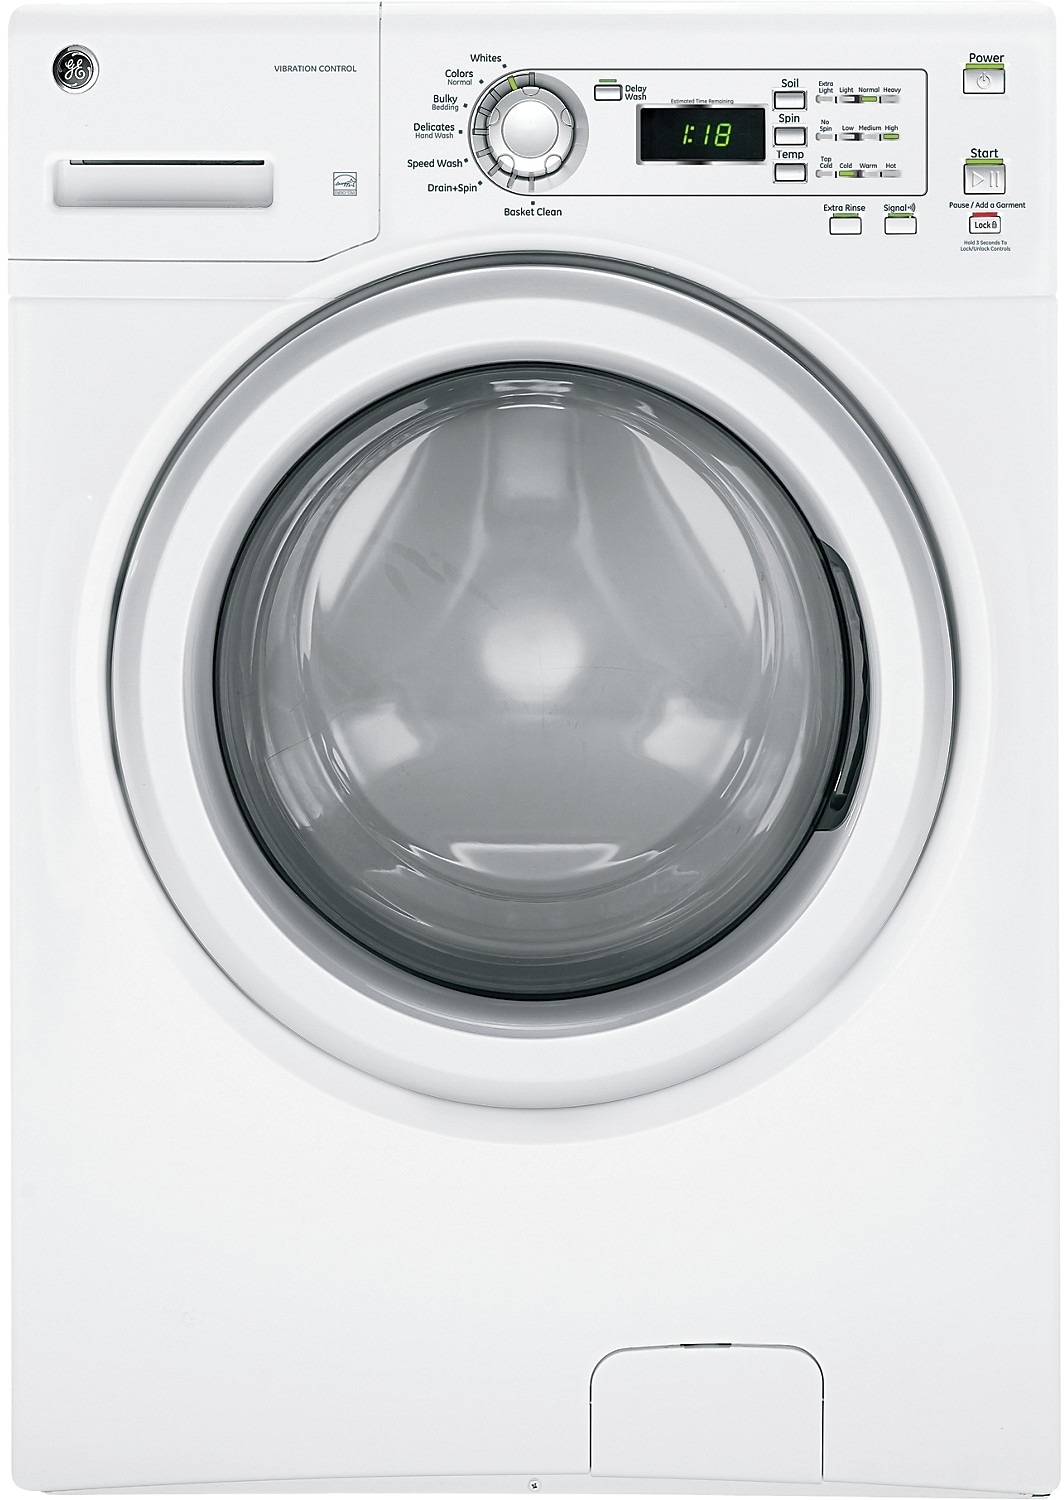 Washers and Dryers - GE 4.2 Cu. Ft. High-Efficiency Front-Load Washer - White